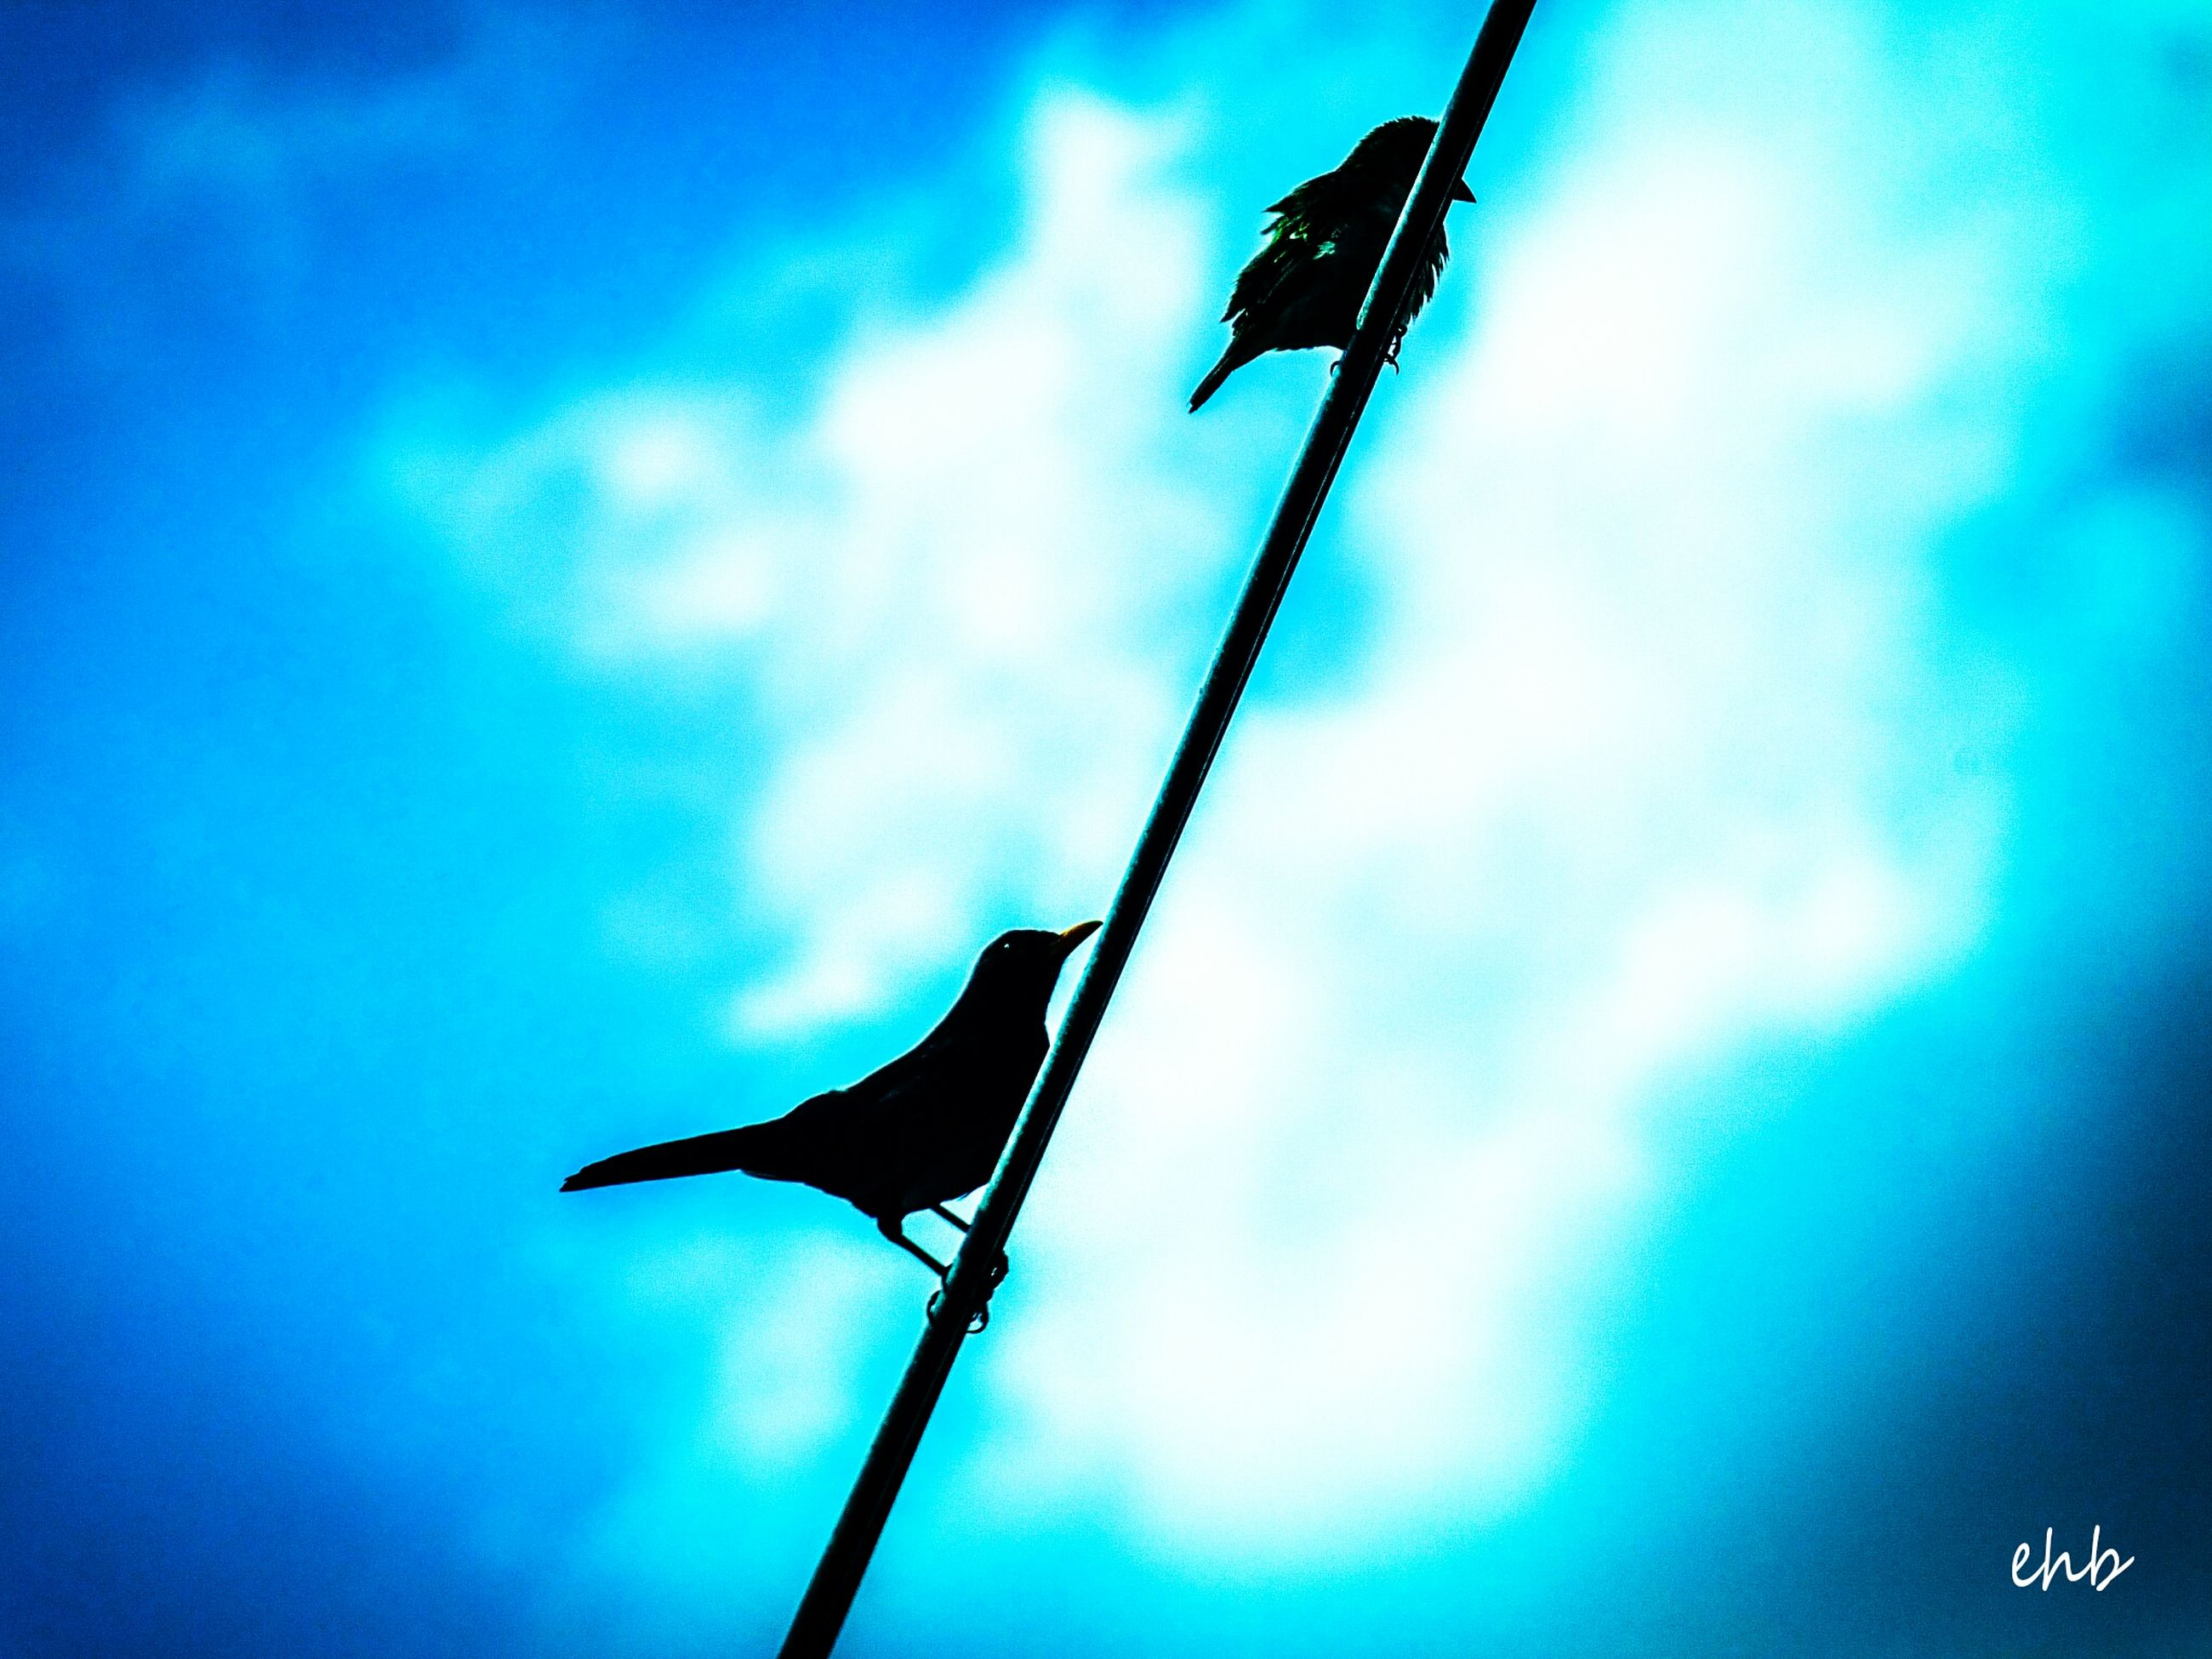 low angle view, blue, sky, animal themes, one animal, cloud, cloud - sky, silhouette, nature, wildlife, outdoors, animals in the wild, no people, day, street light, pole, focus on foreground, lighting equipment, bird, cloudy